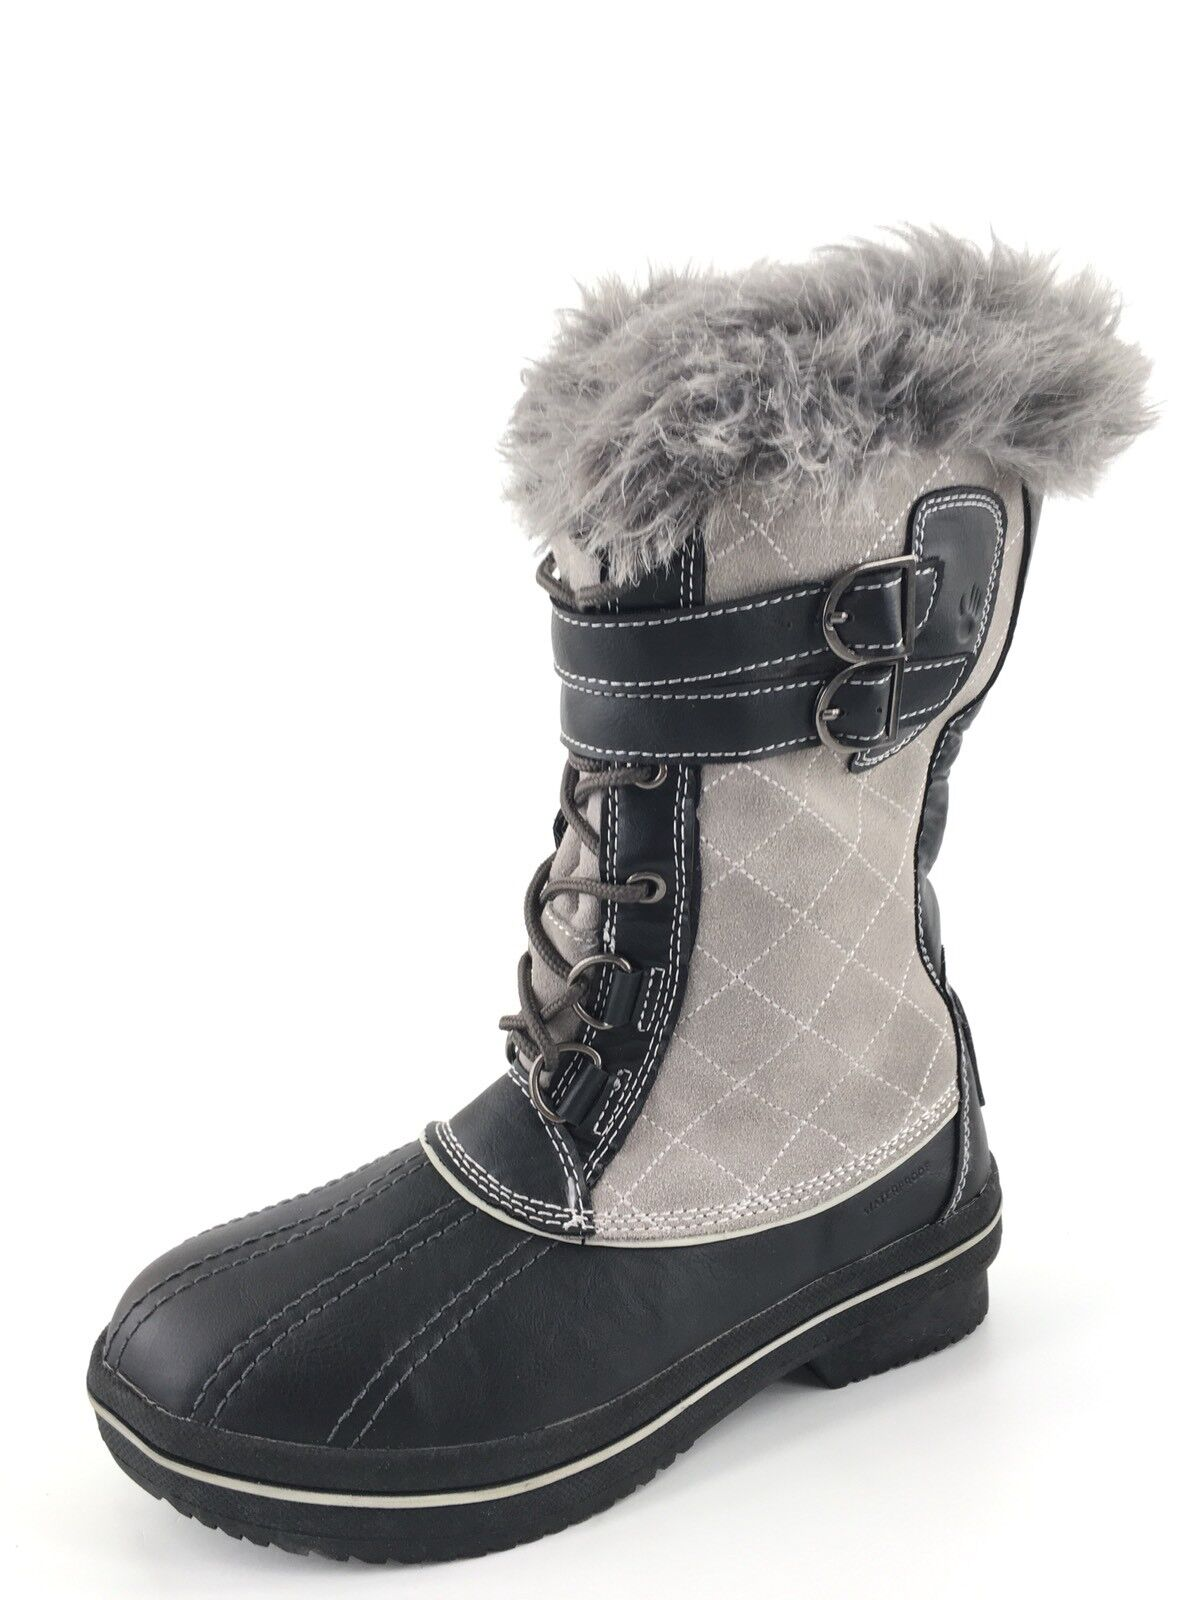 Bearpaw Rossland Charcoal Suede Leather Lace Up Winter Boots Women's Size 6 M